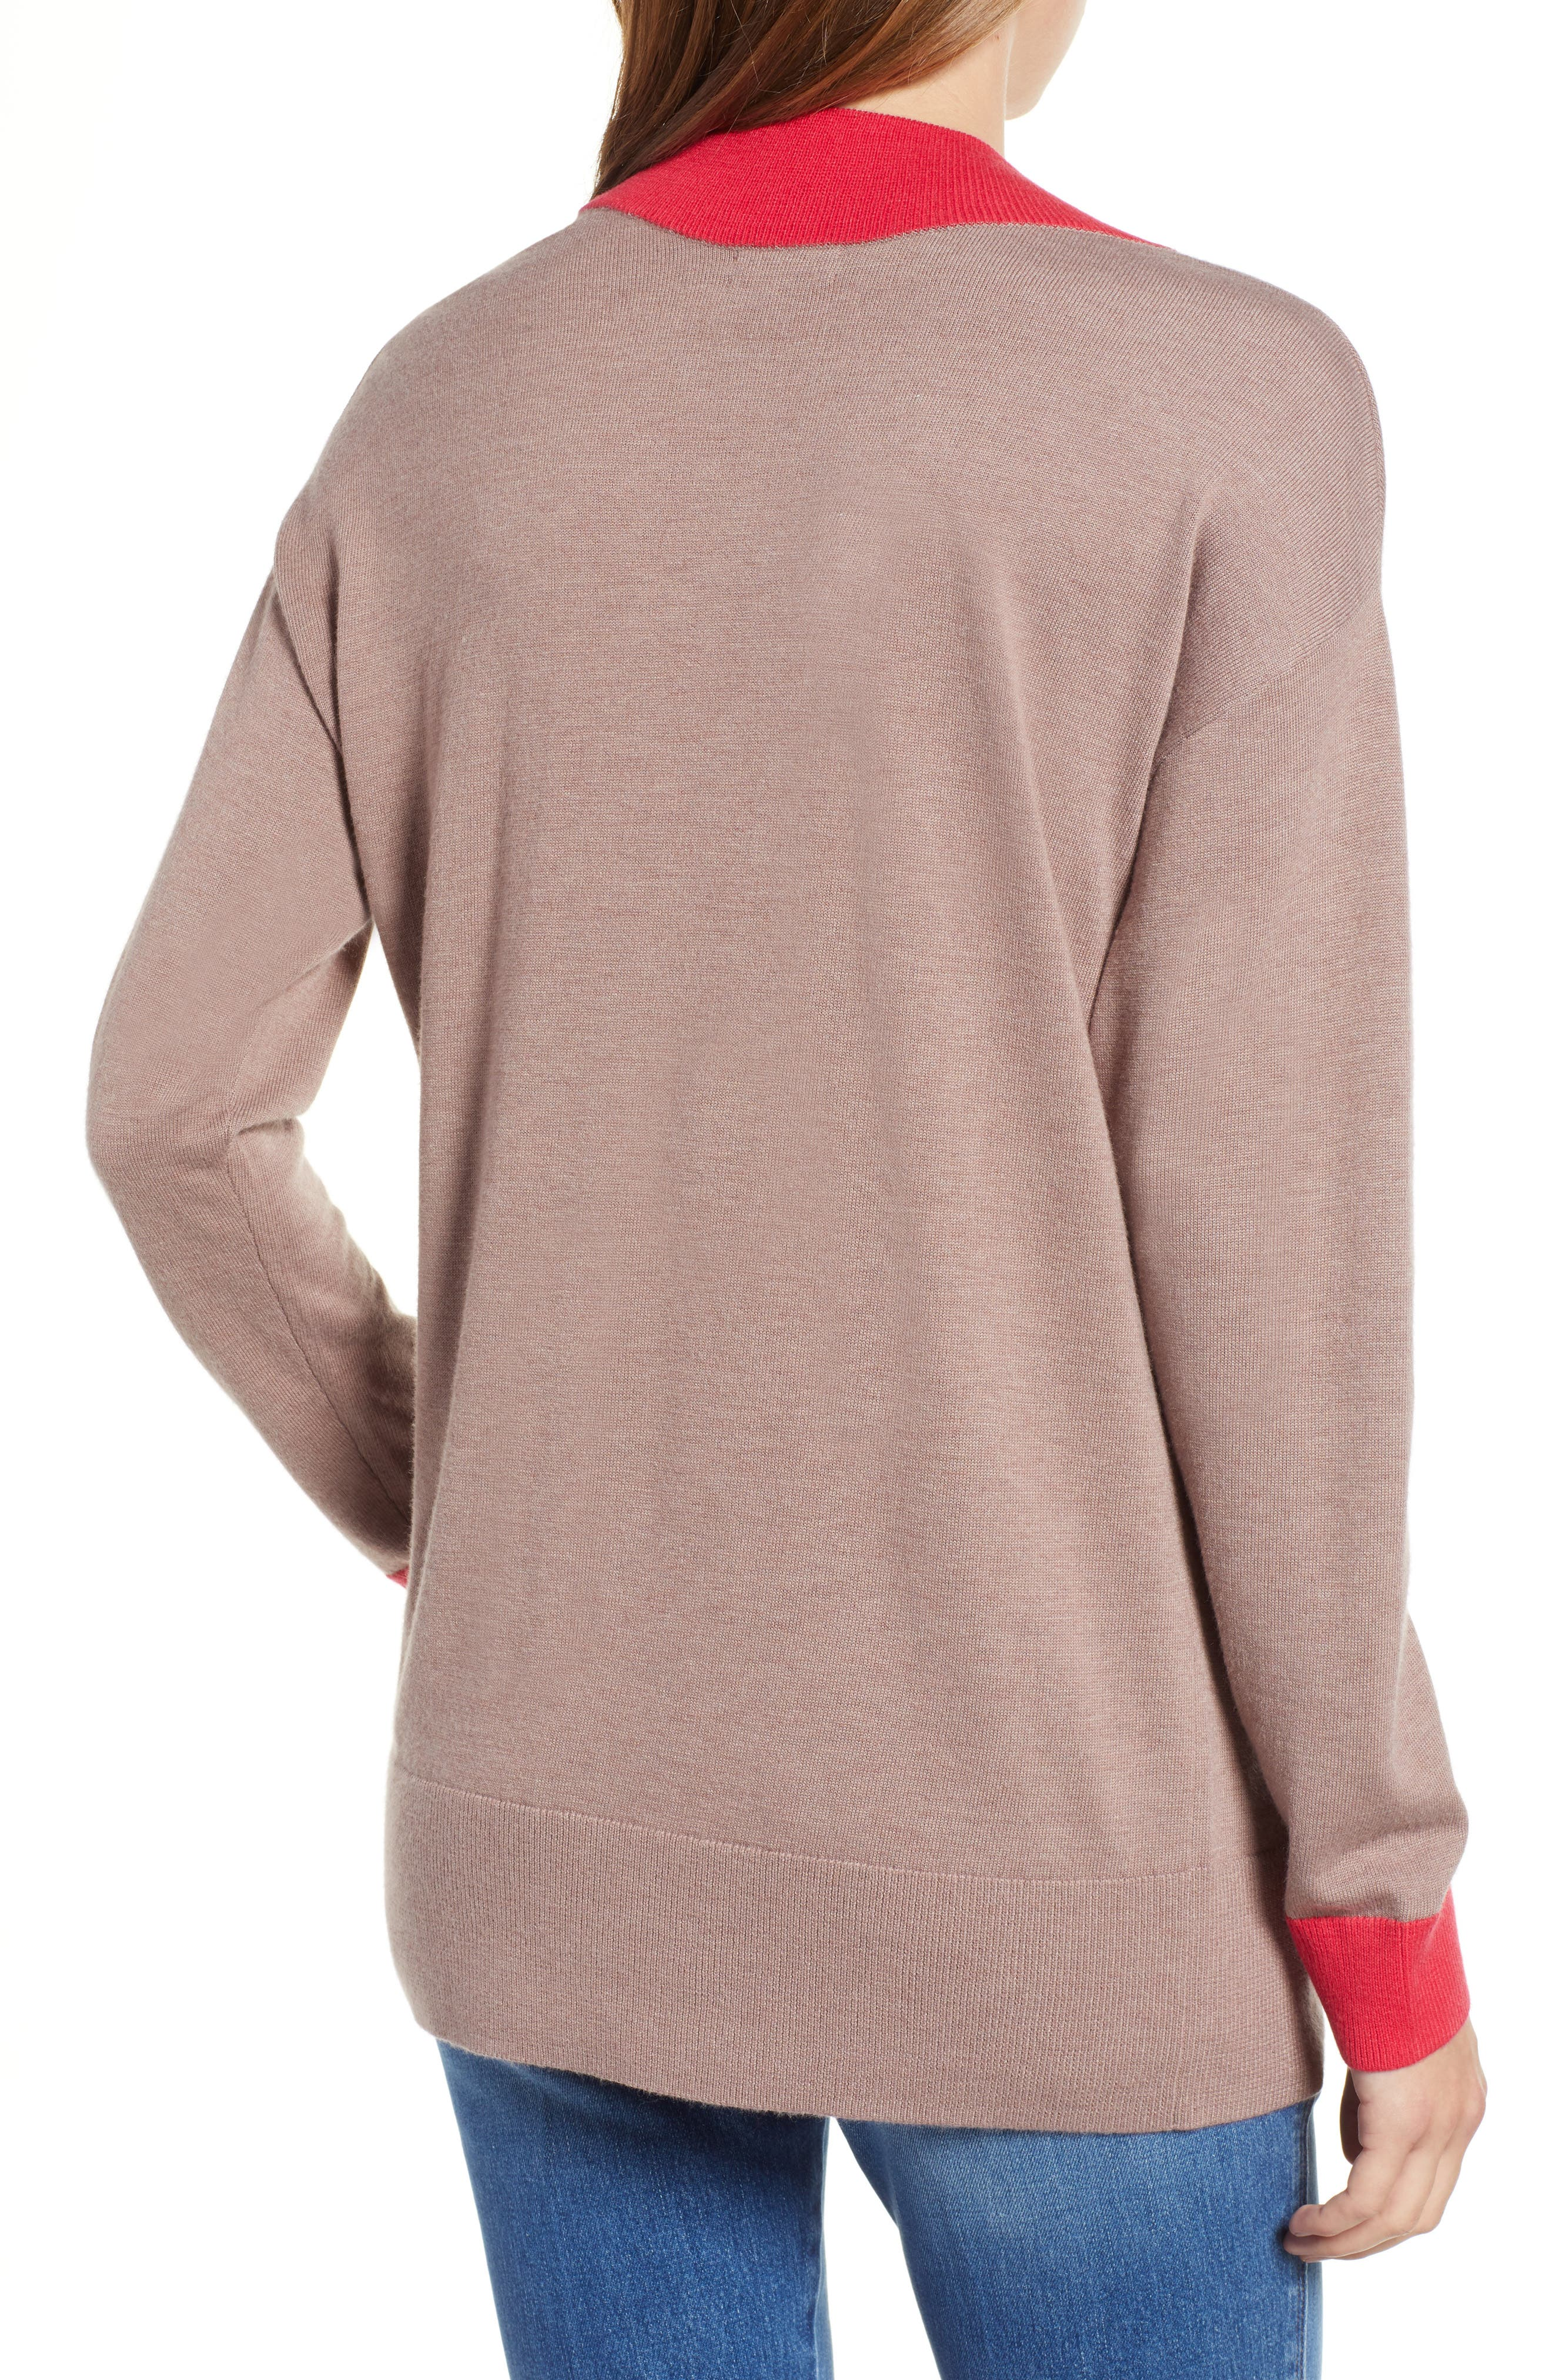 CHELSEA28,                             V-Neck Sweater,                             Alternate thumbnail 2, color,                             PINK FAWN HEATHER COMBO